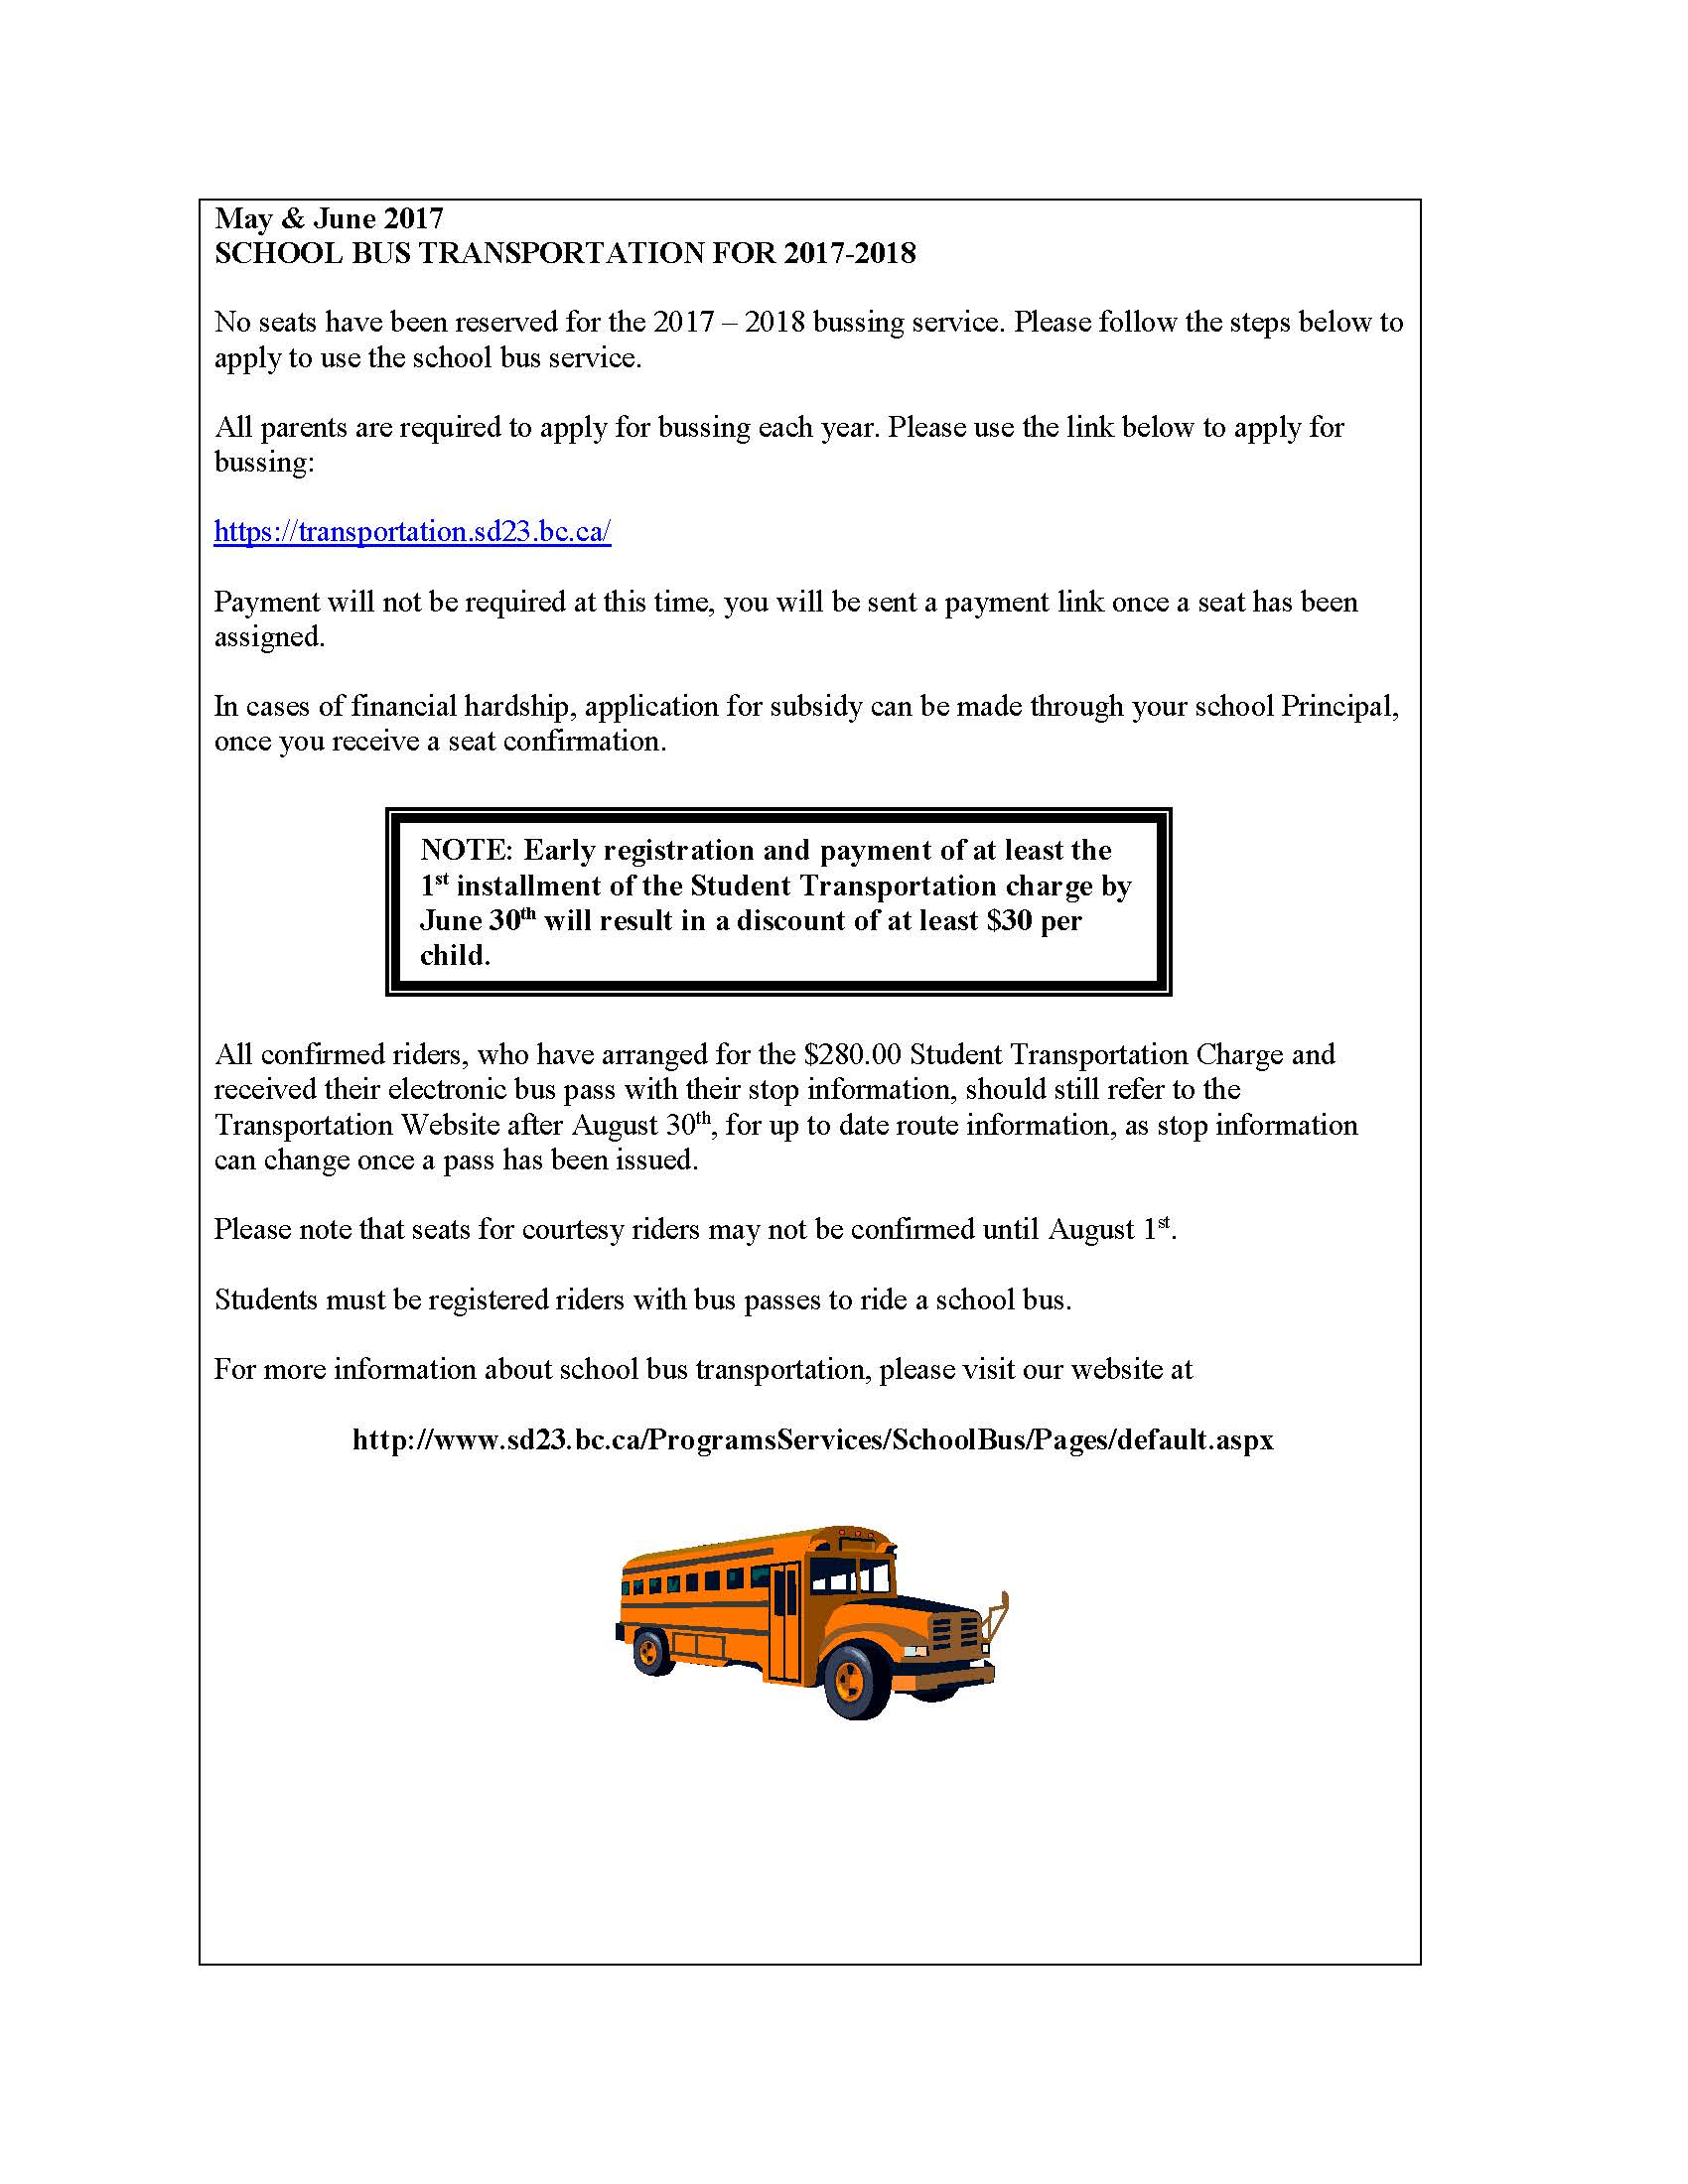 School Newsletters May 2017_Page_1.jpg